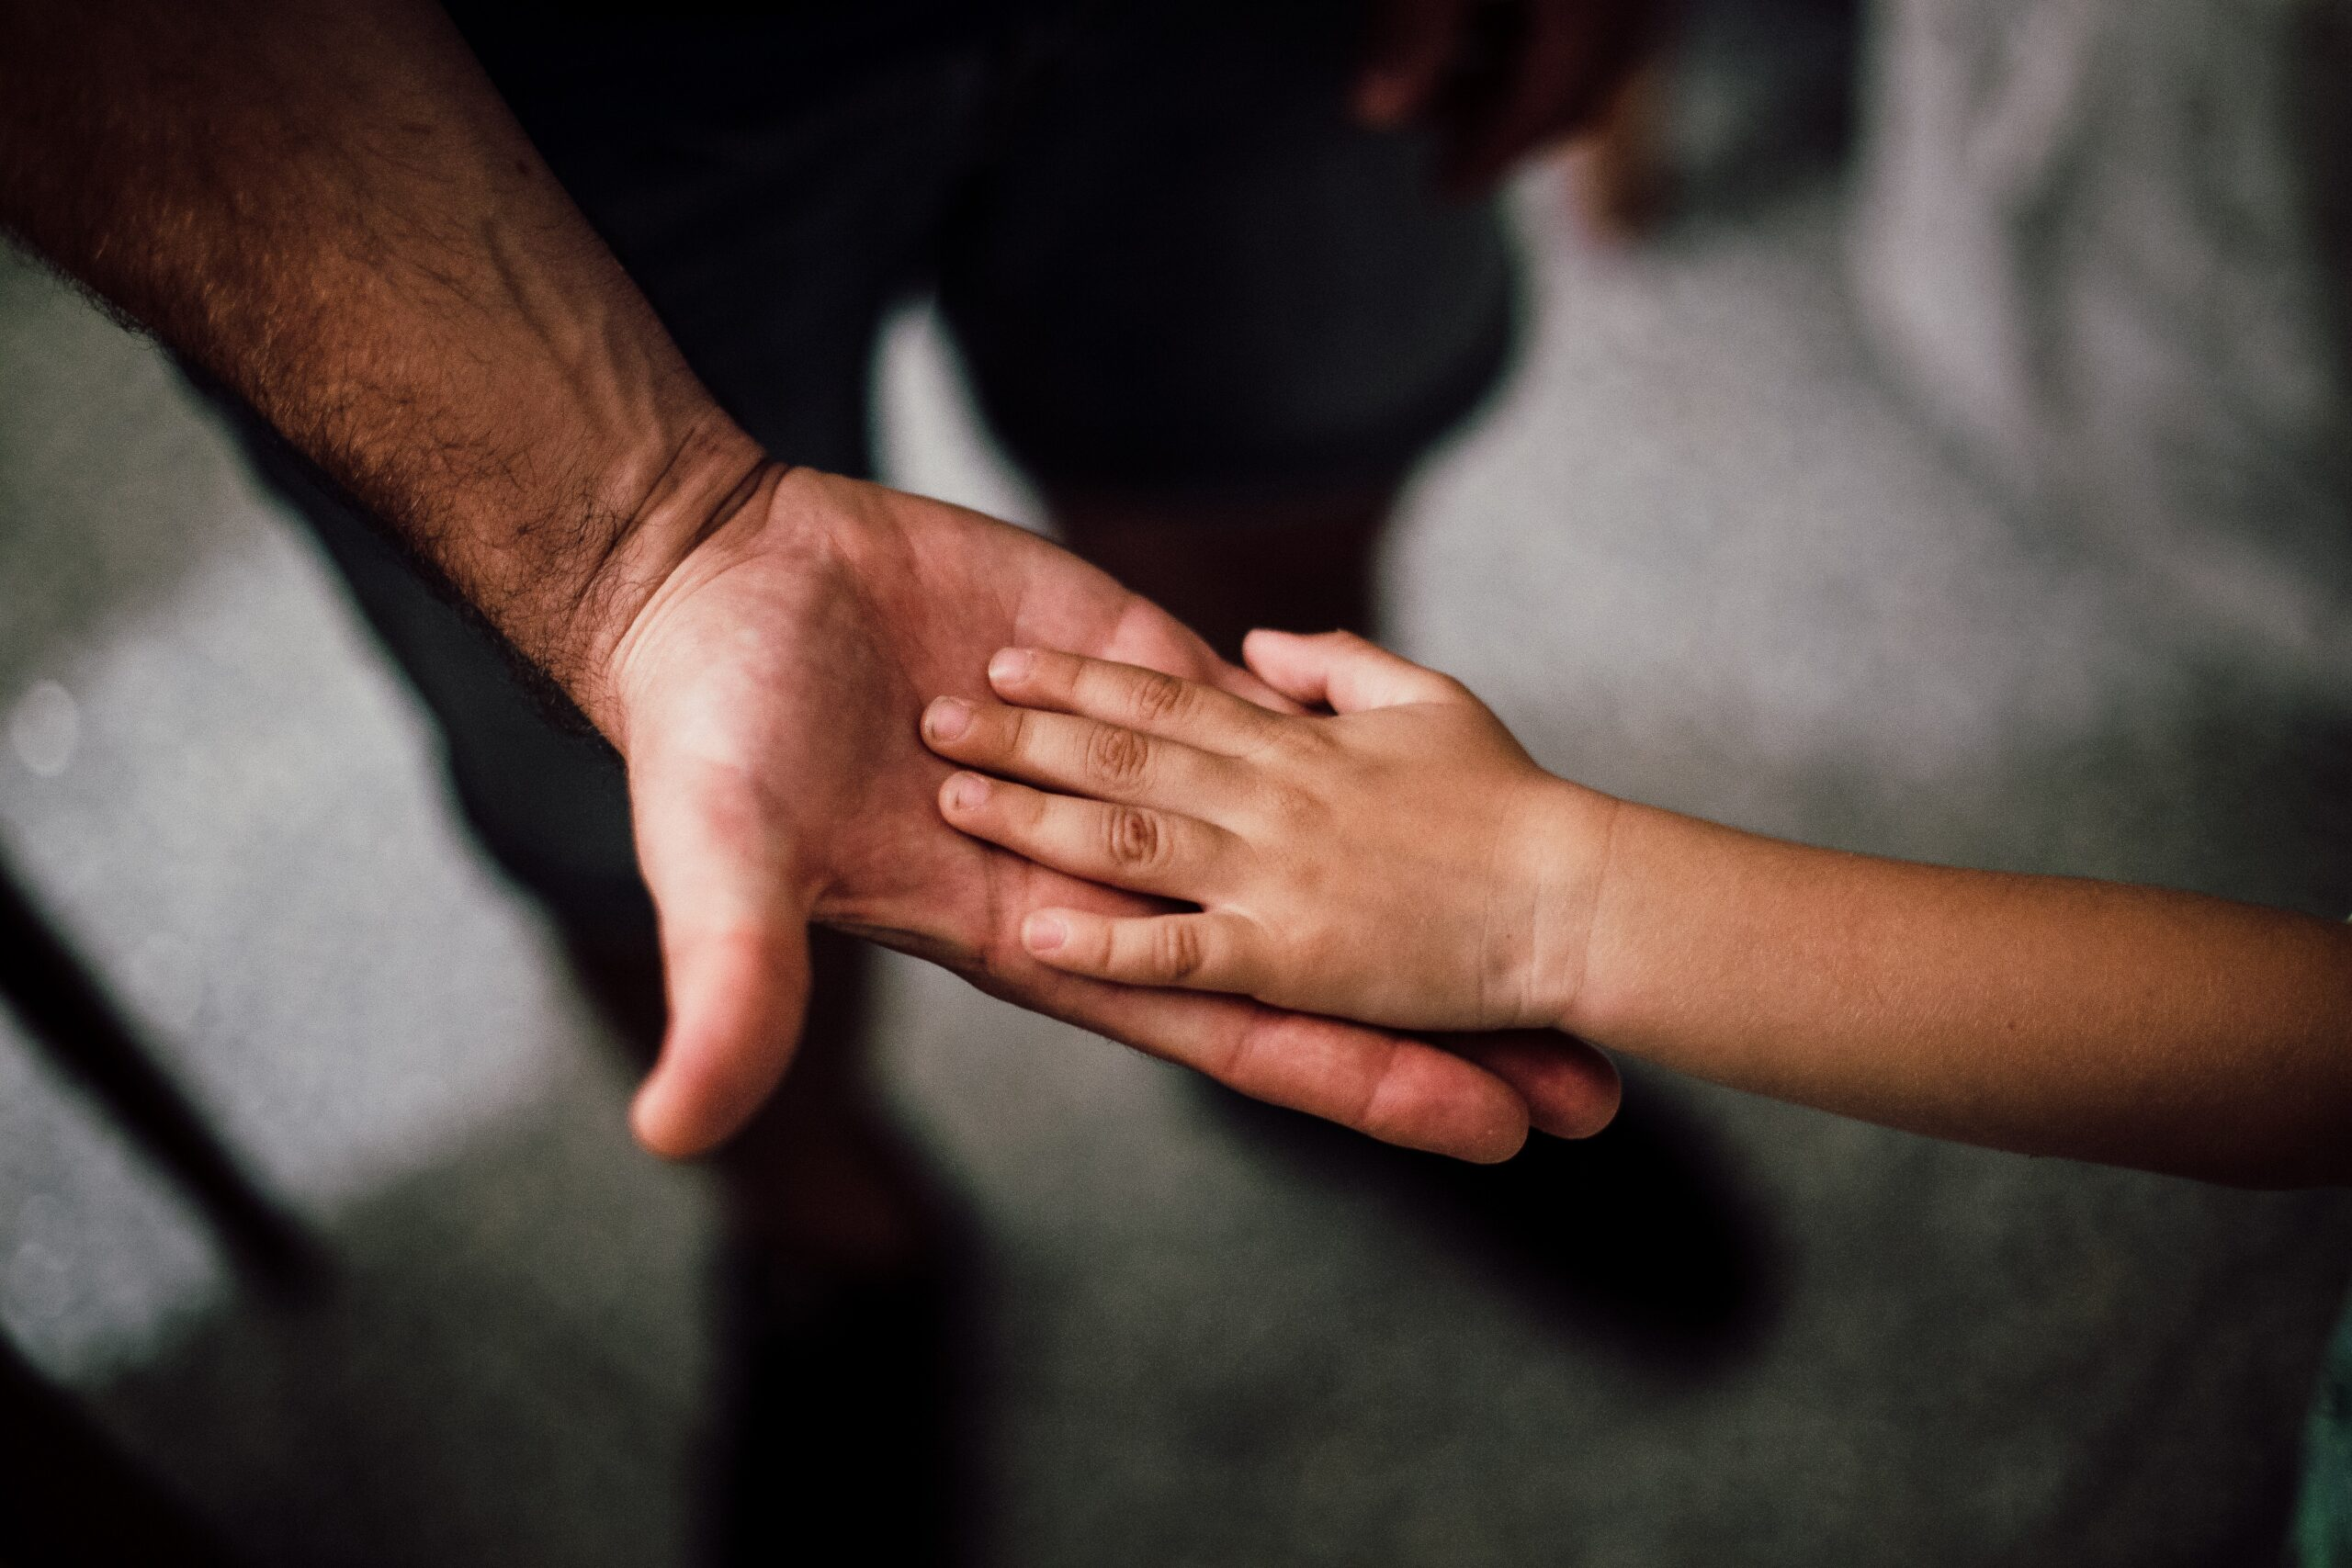 Child putting hand in father's palm